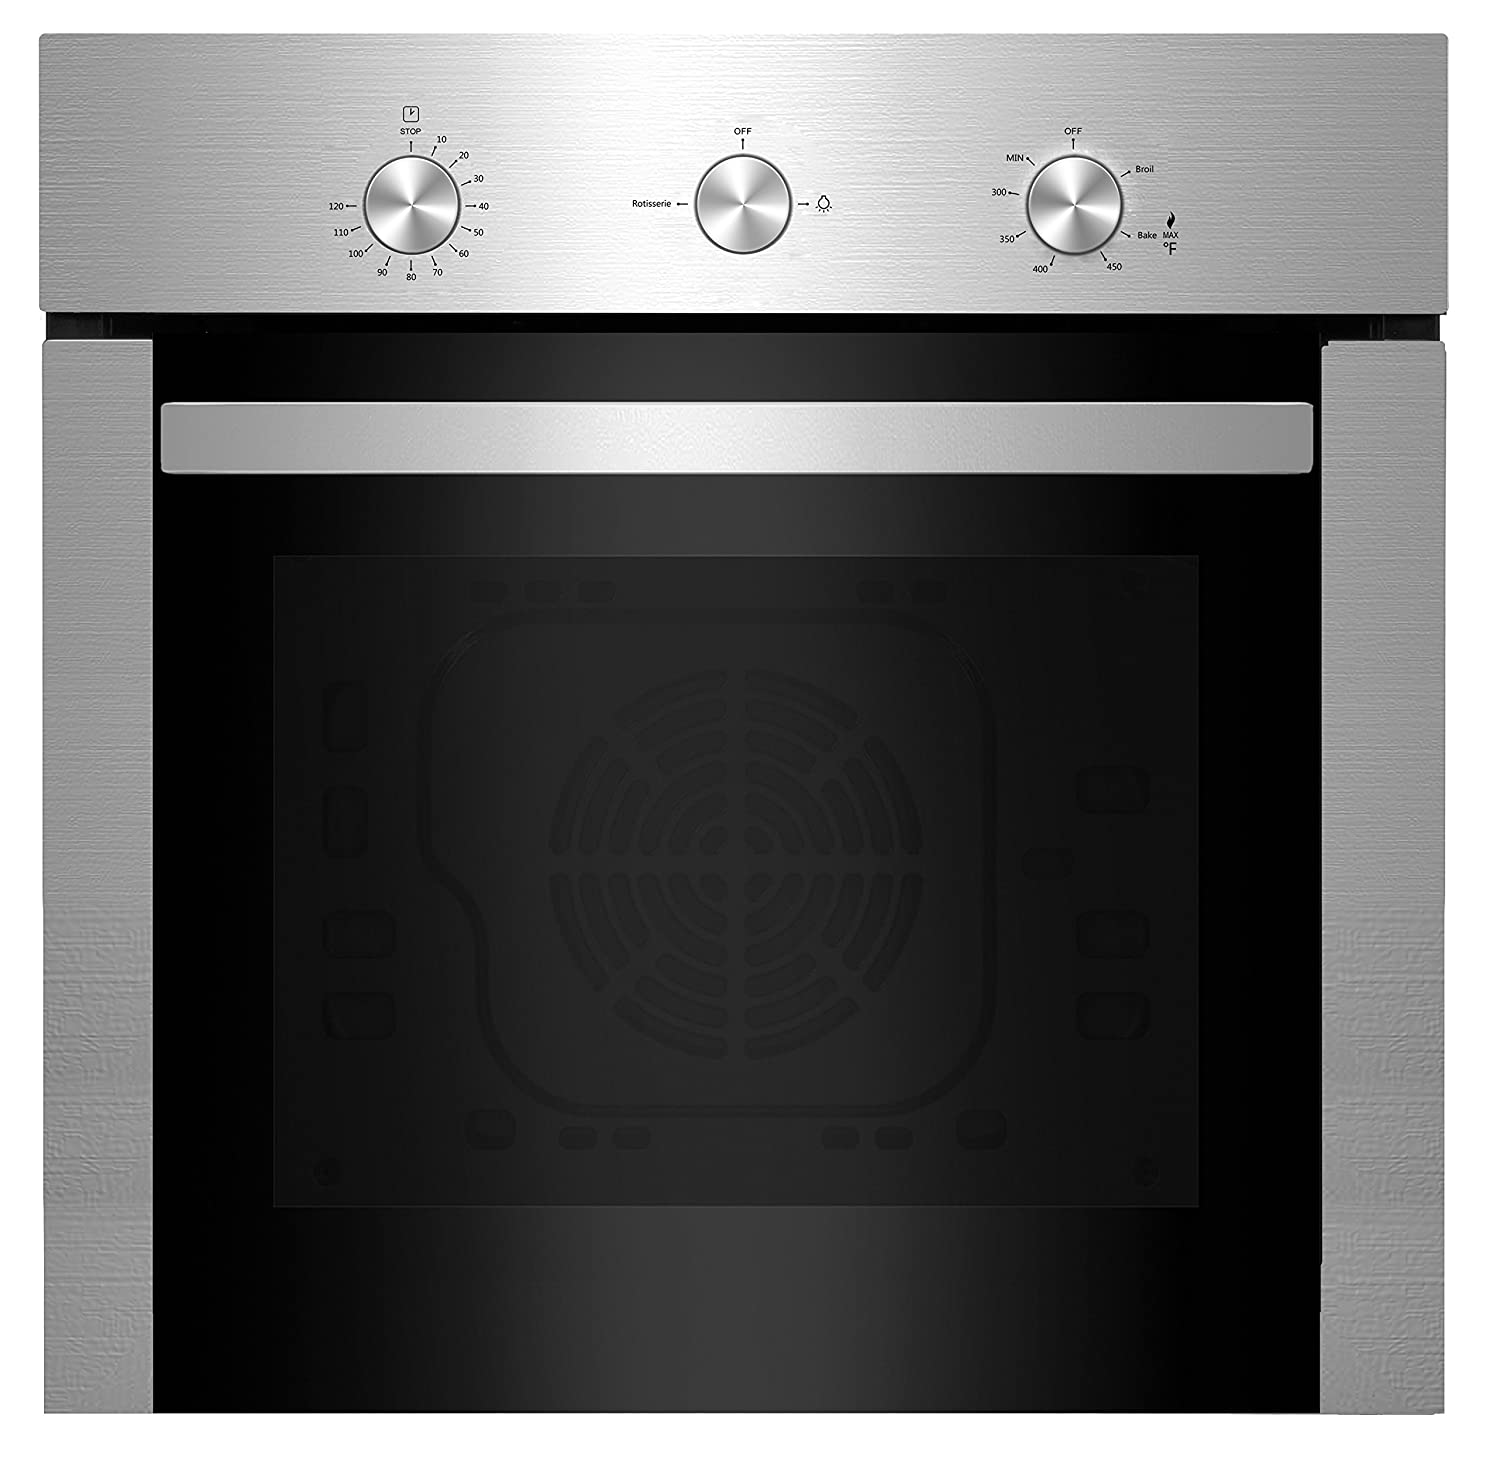 "Empava 24"" Stainless Steel Built-in NG/LPG Convertible Broil/Rotisserie Gas Single Wall Ovens 1500W + 2500W EMPV-24WOD04"